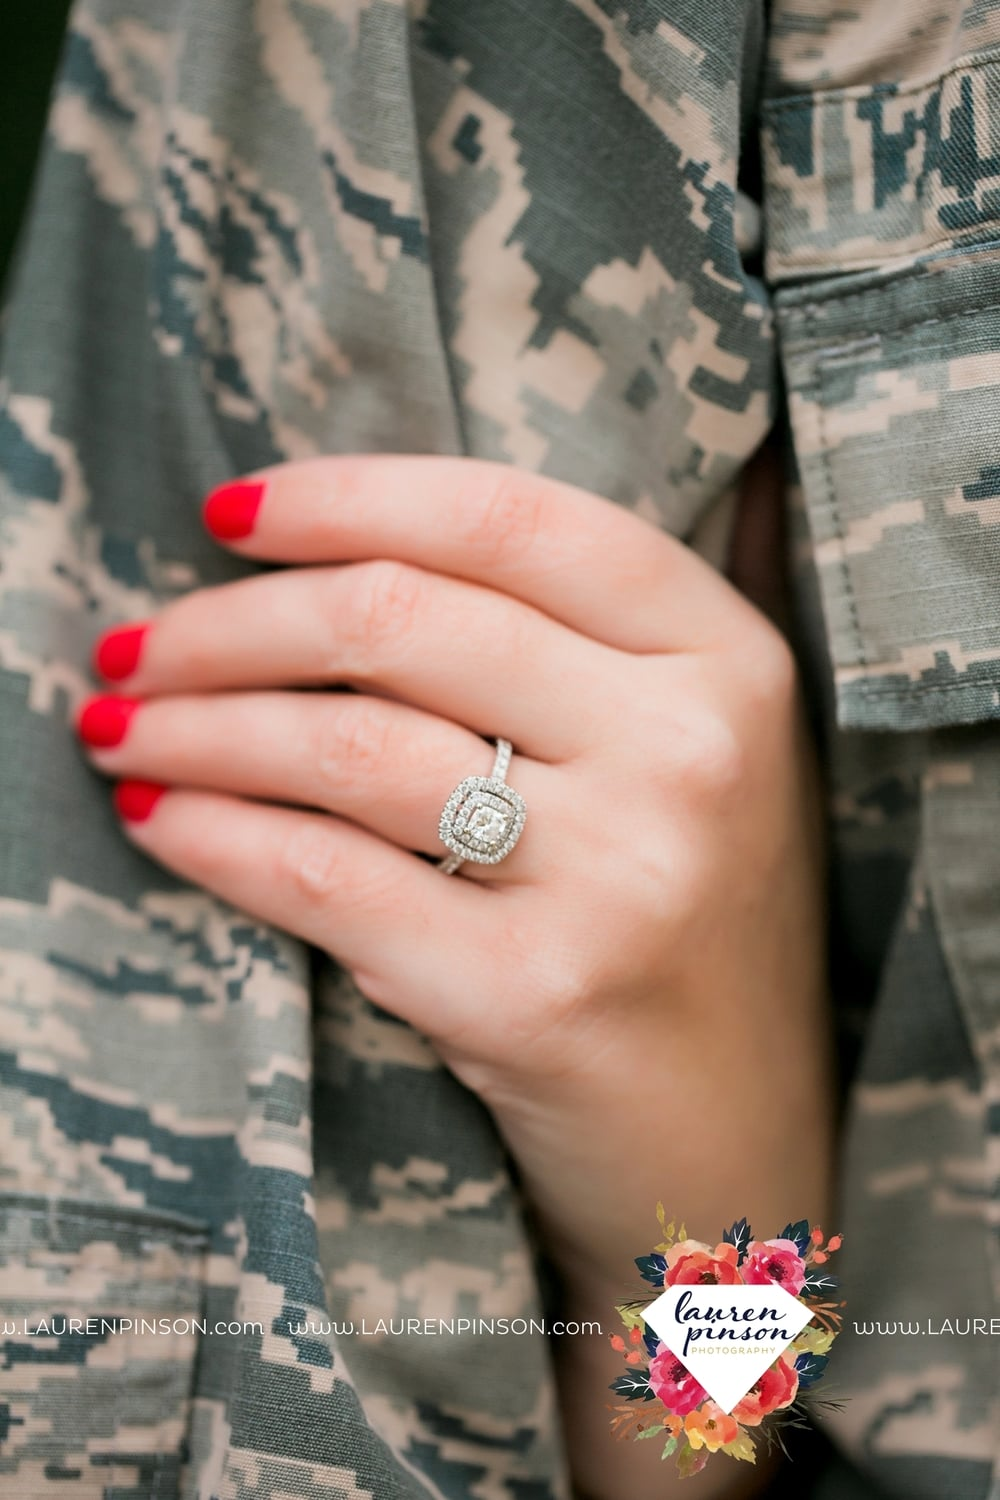 sheppard-afb-wichita-falls-engagement-session-airmen-in-uniform-abu-airplanes-bride-engagement-ring-texas-air-force-base_1993.jpg